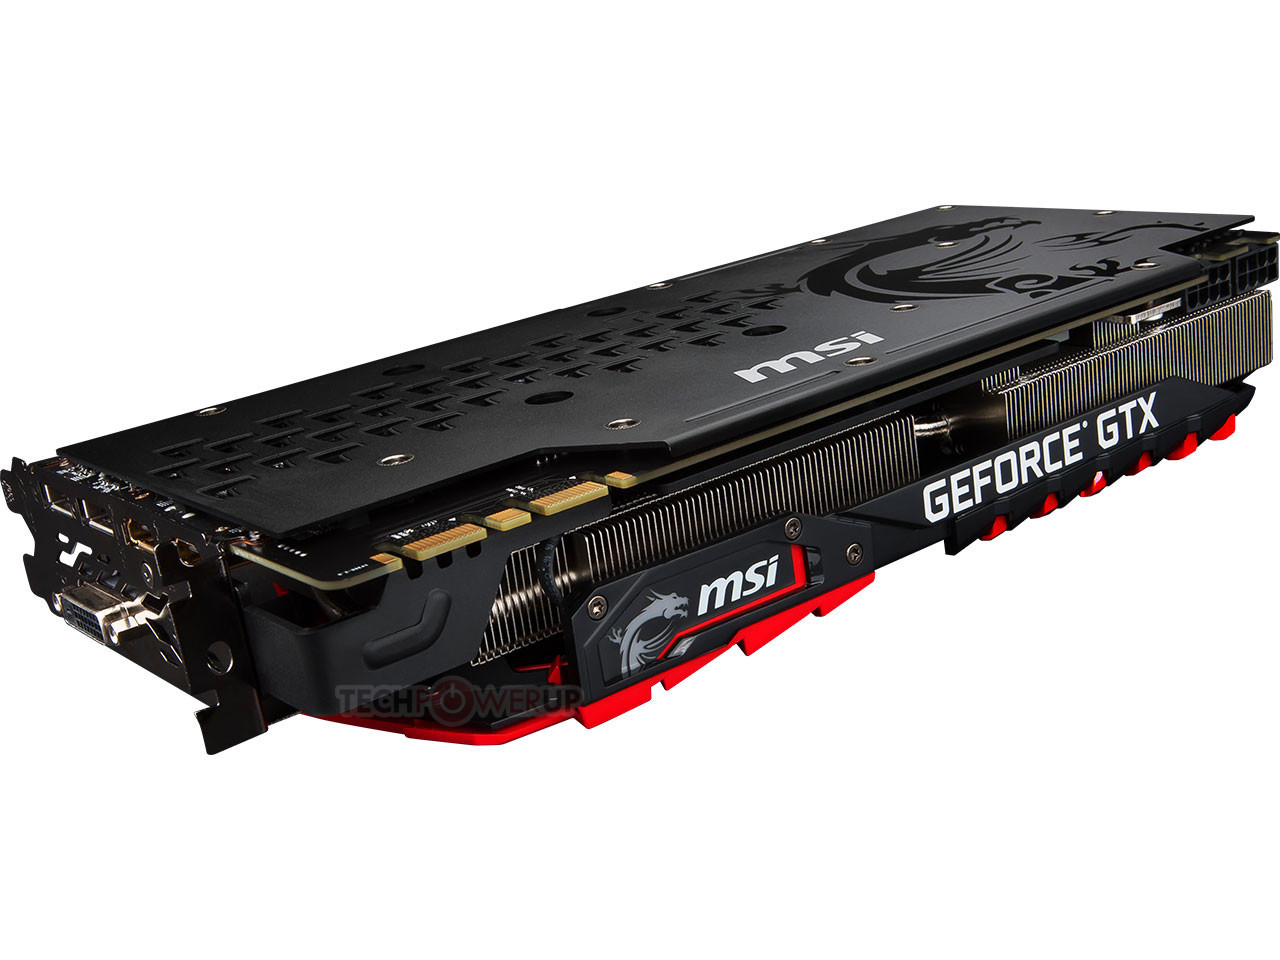 msi lifts the lid on their geforce gtx 1080 ti gaming x. Black Bedroom Furniture Sets. Home Design Ideas